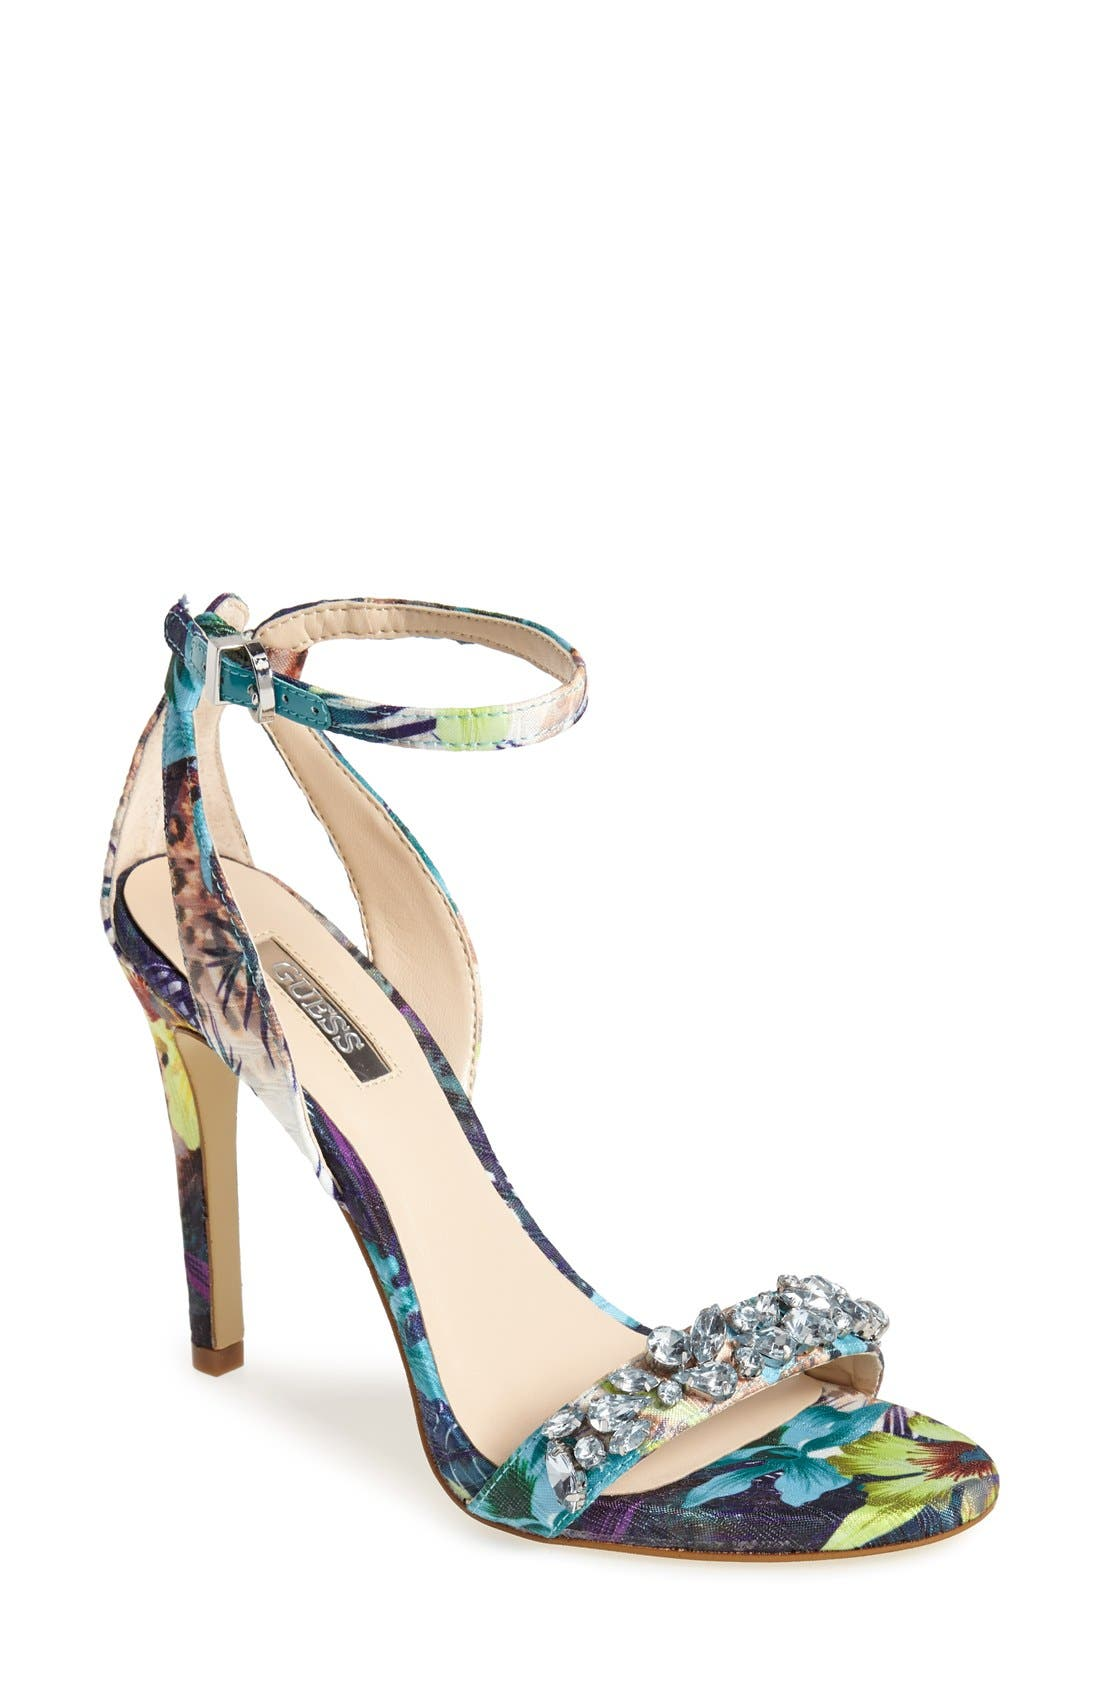 Alternate Image 1 Selected - Guess 'Catarina' Ankle Strap Sandal (Women)